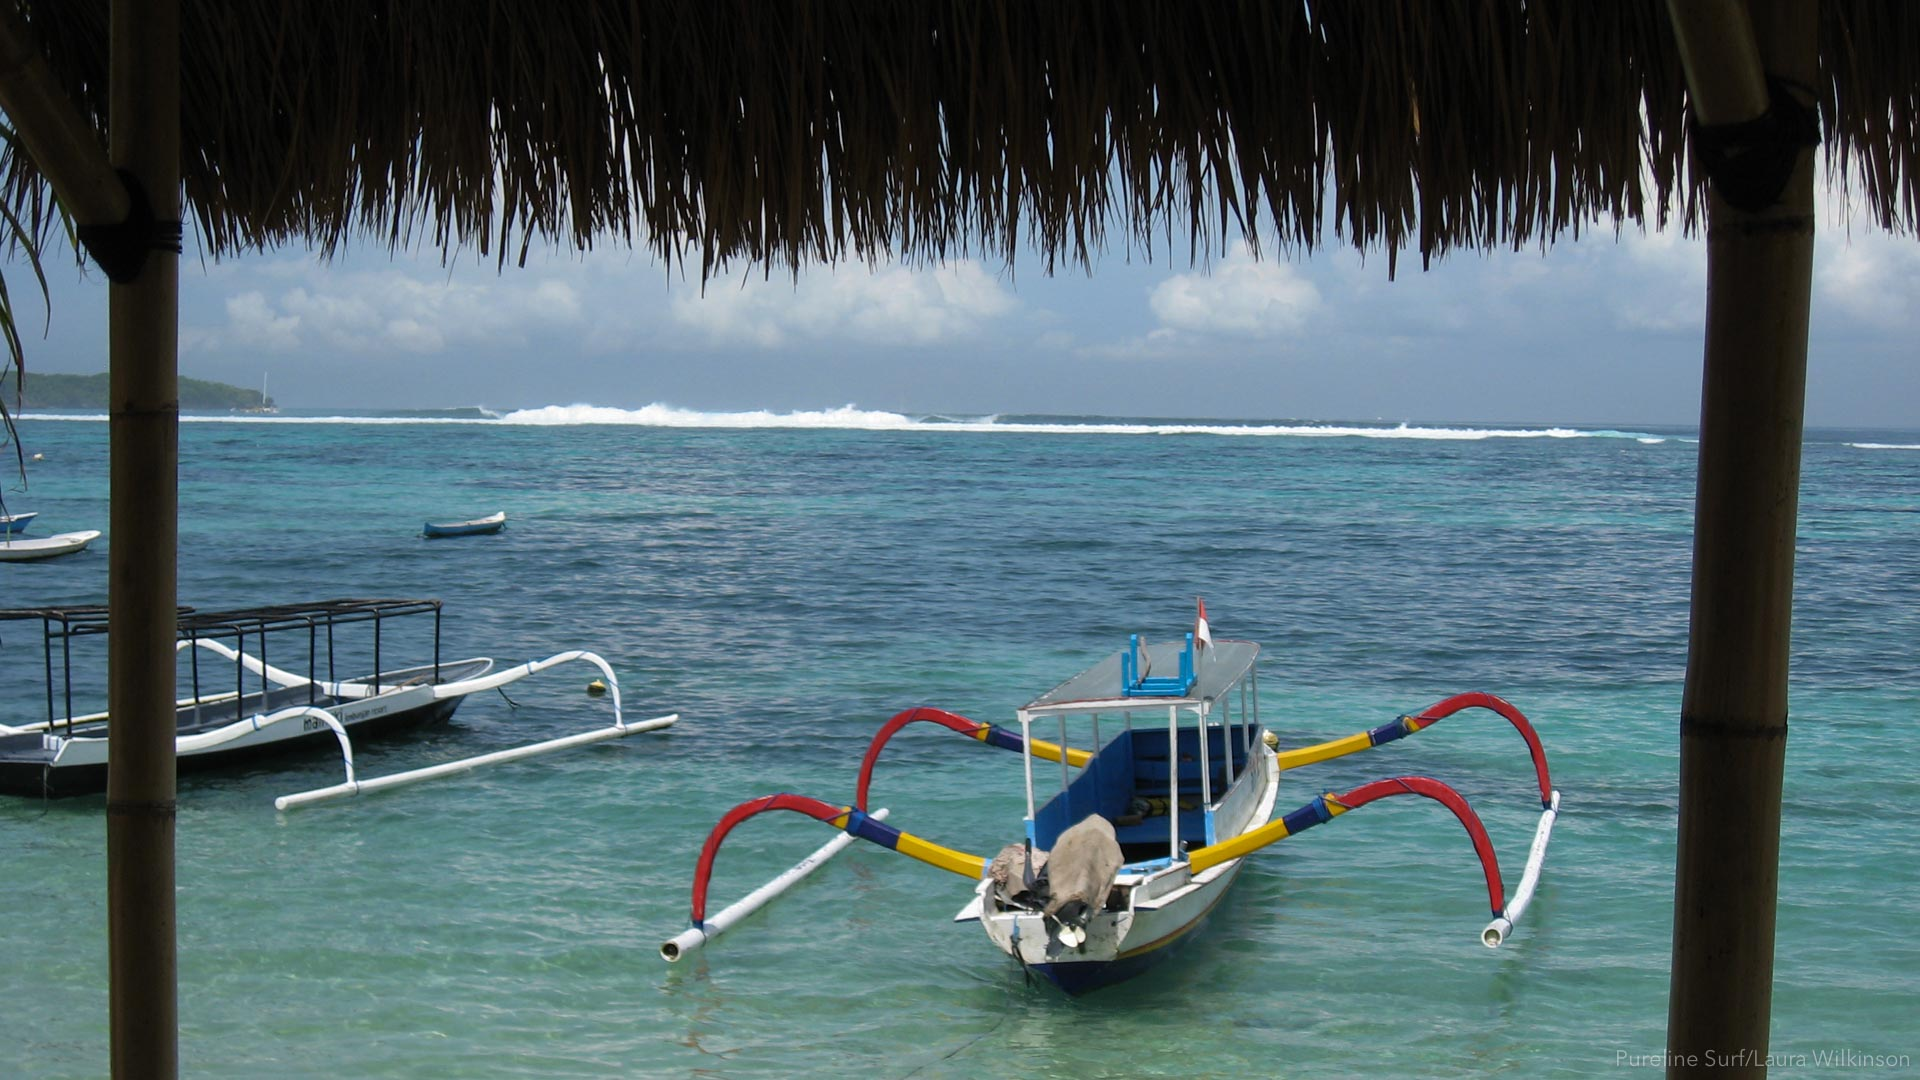 Boats in the foreground, waves in the background. A slice of life in Nusa Lembongan during a Pureline Surf Worldwide Coaching Trip.